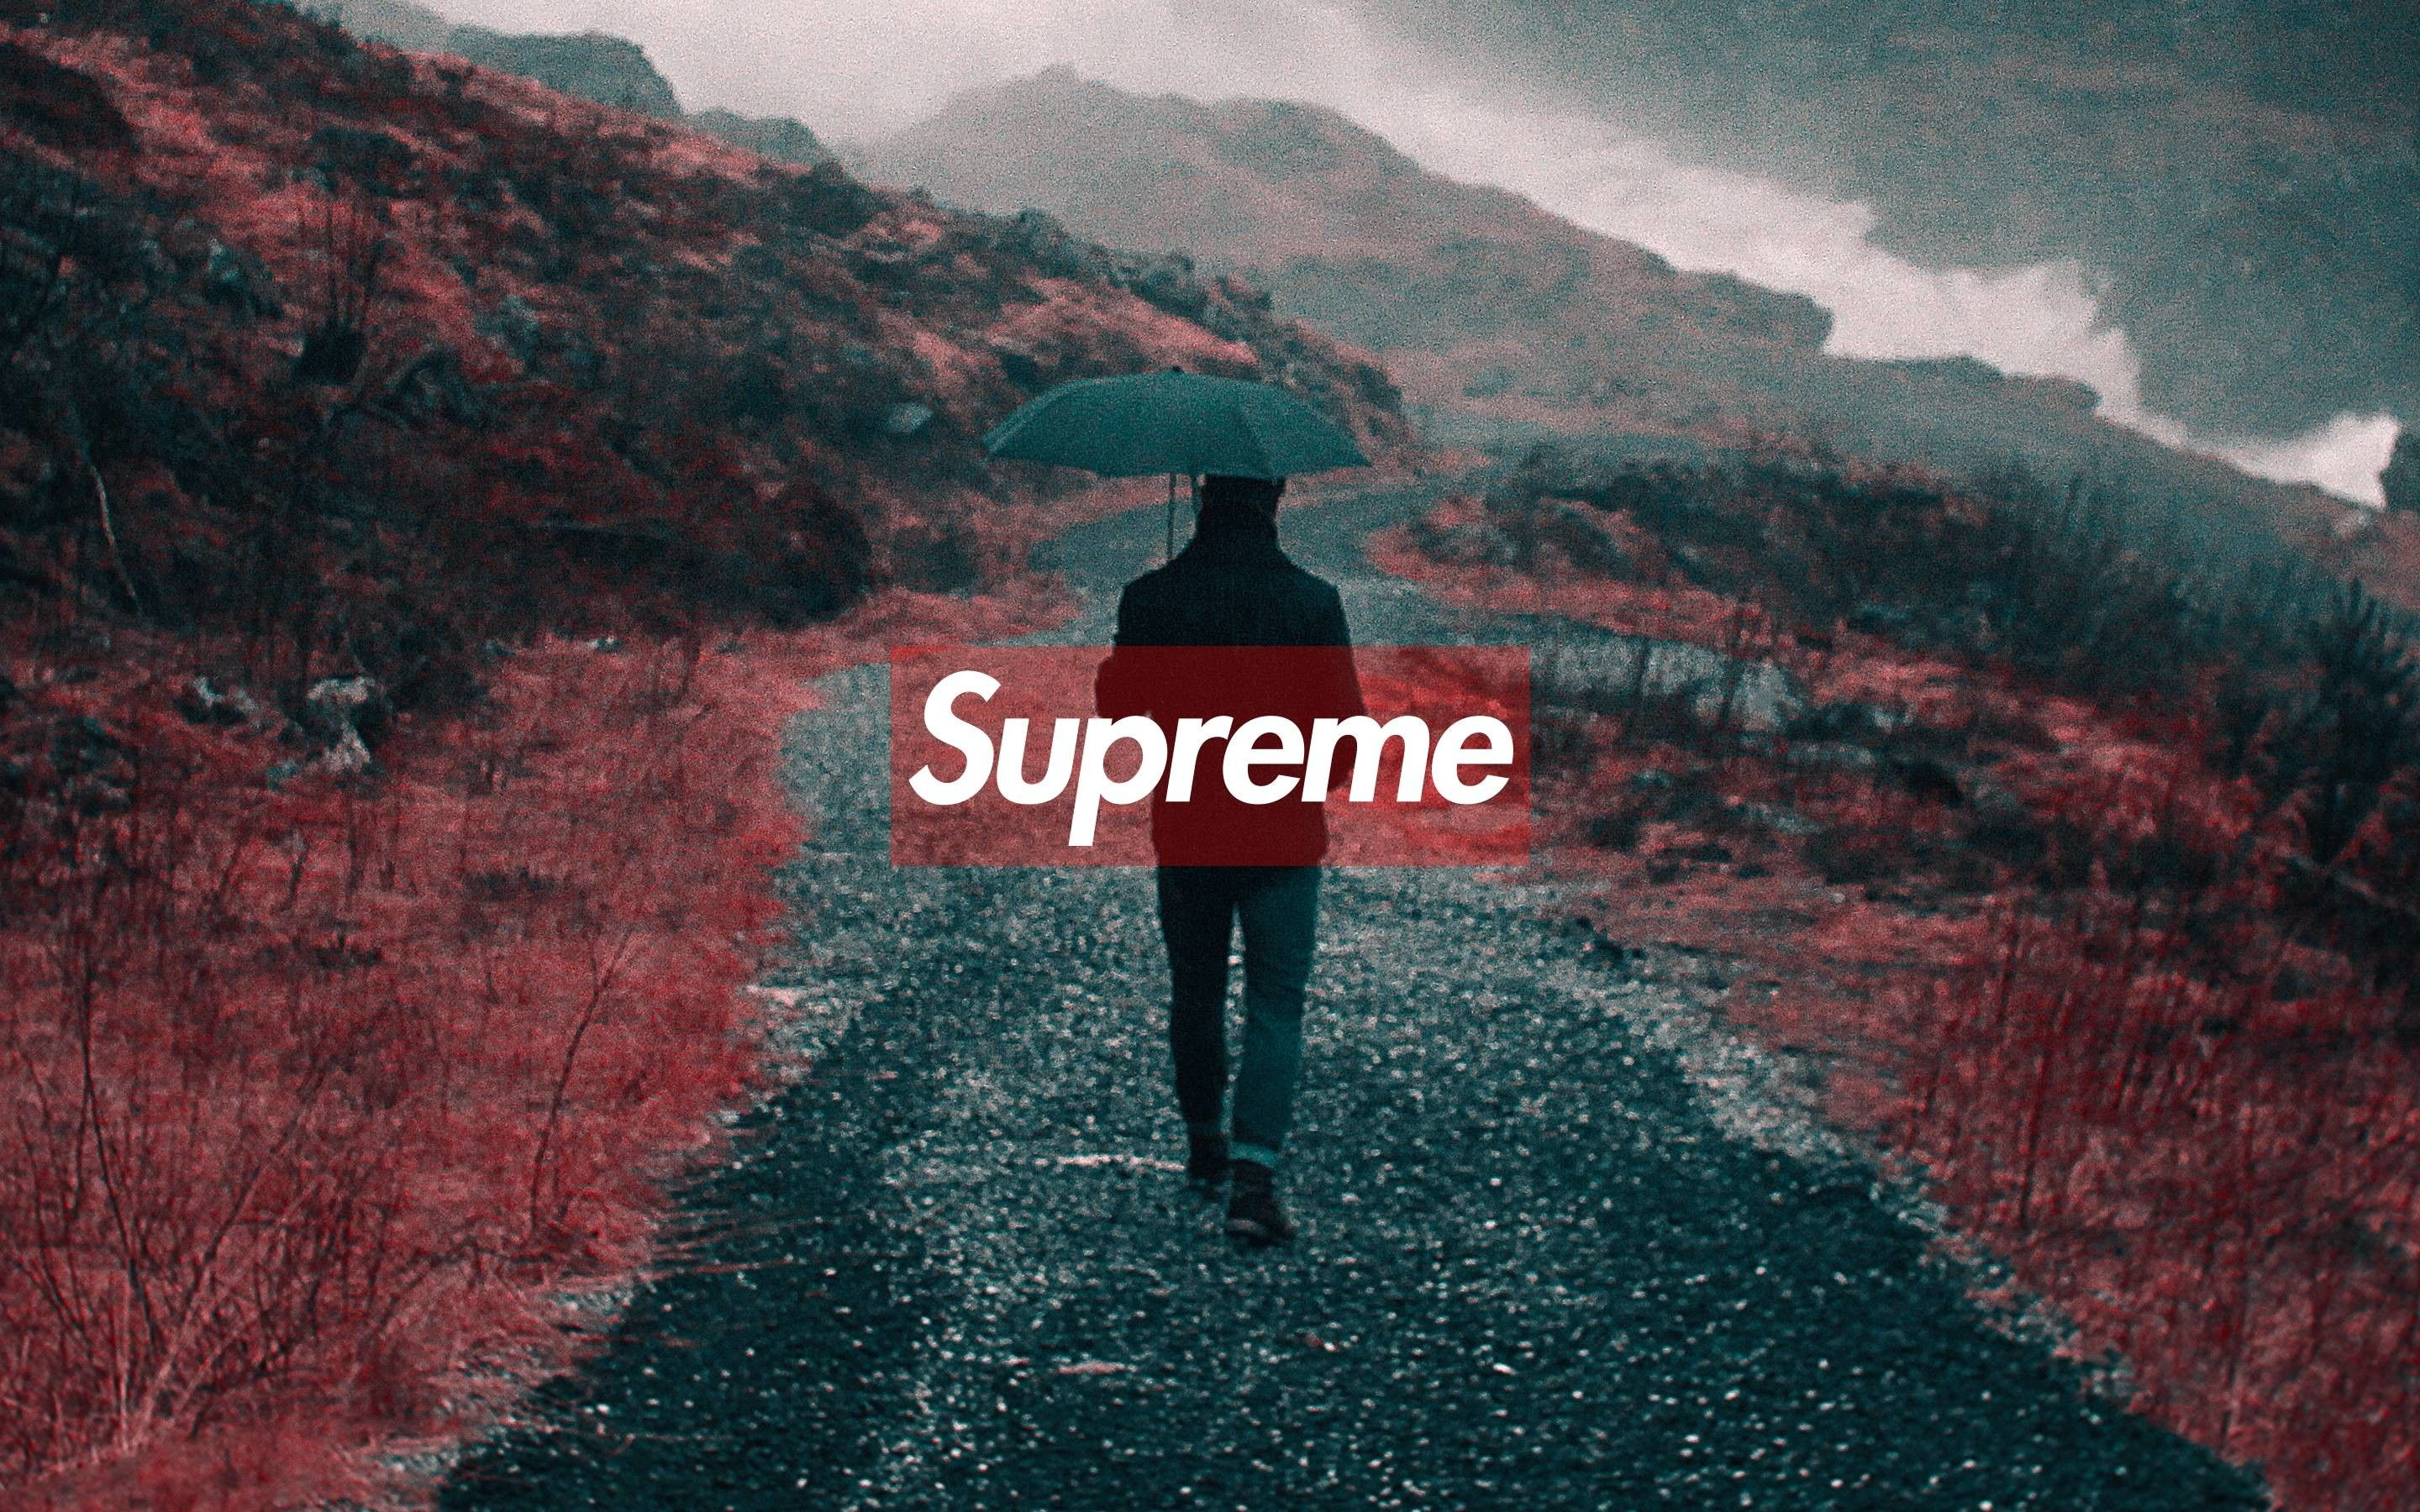 2880x1800 Supreme Wallpapers and Background Images - stmed.net